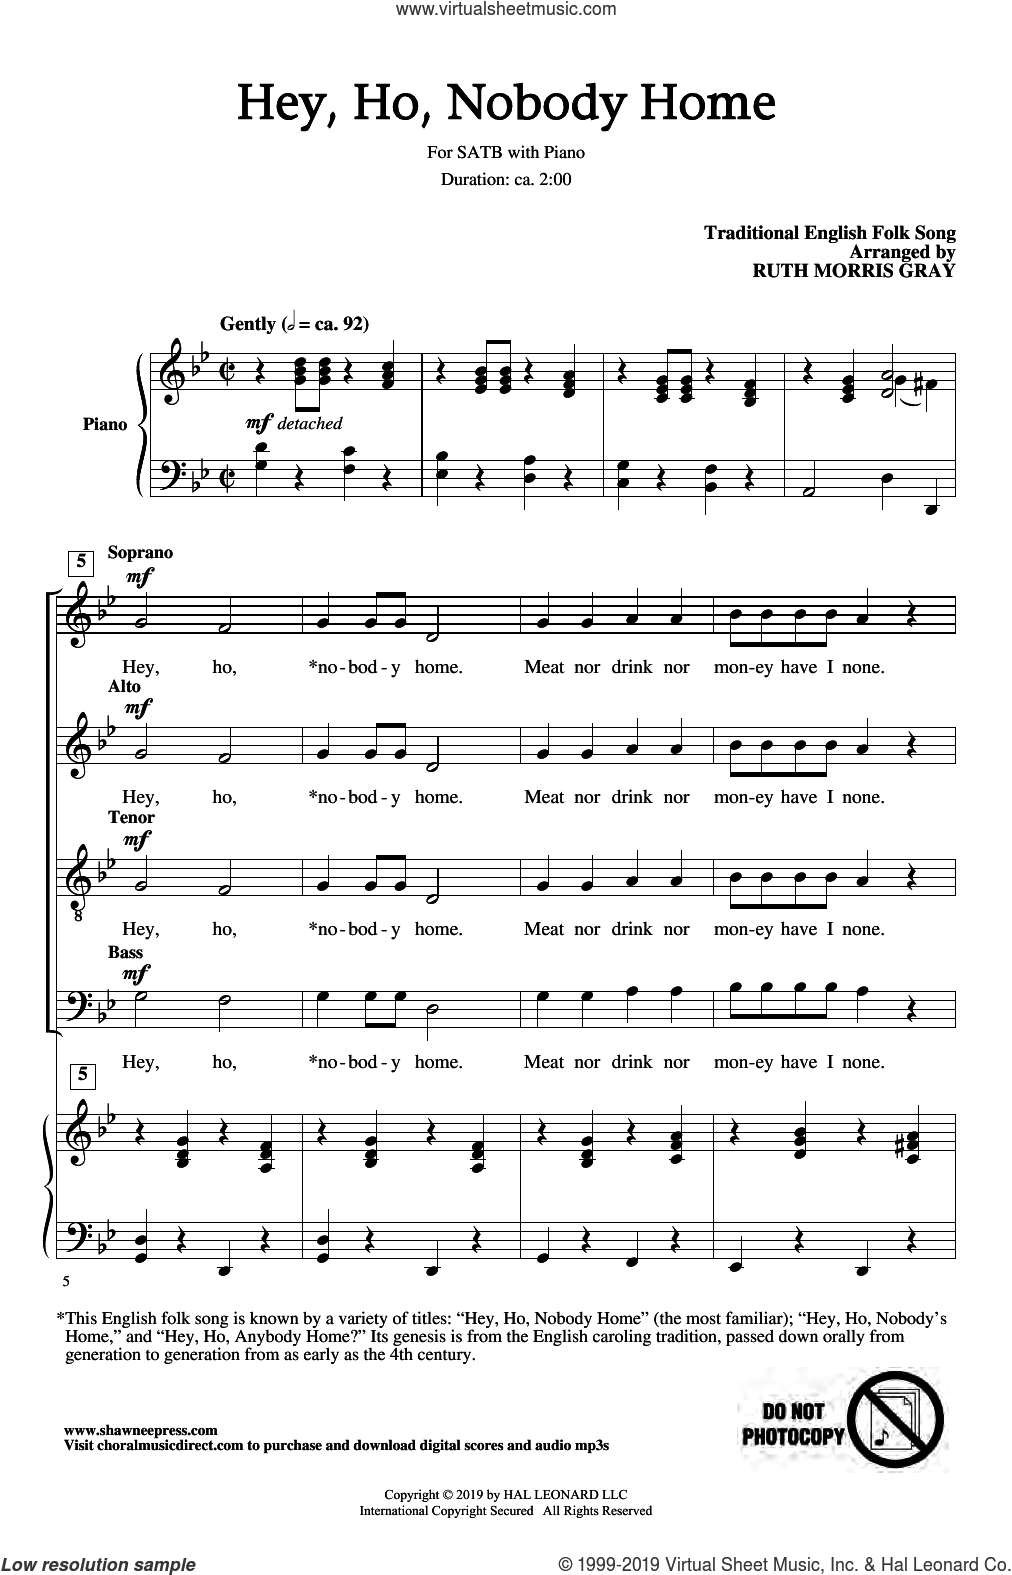 Hey Ho, Nobody Home (arr. Ruth Morris Gray) sheet music for choir (SATB: soprano, alto, tenor, bass) by Traditional English Folk Song and Ruth Morris Gray, intermediate skill level